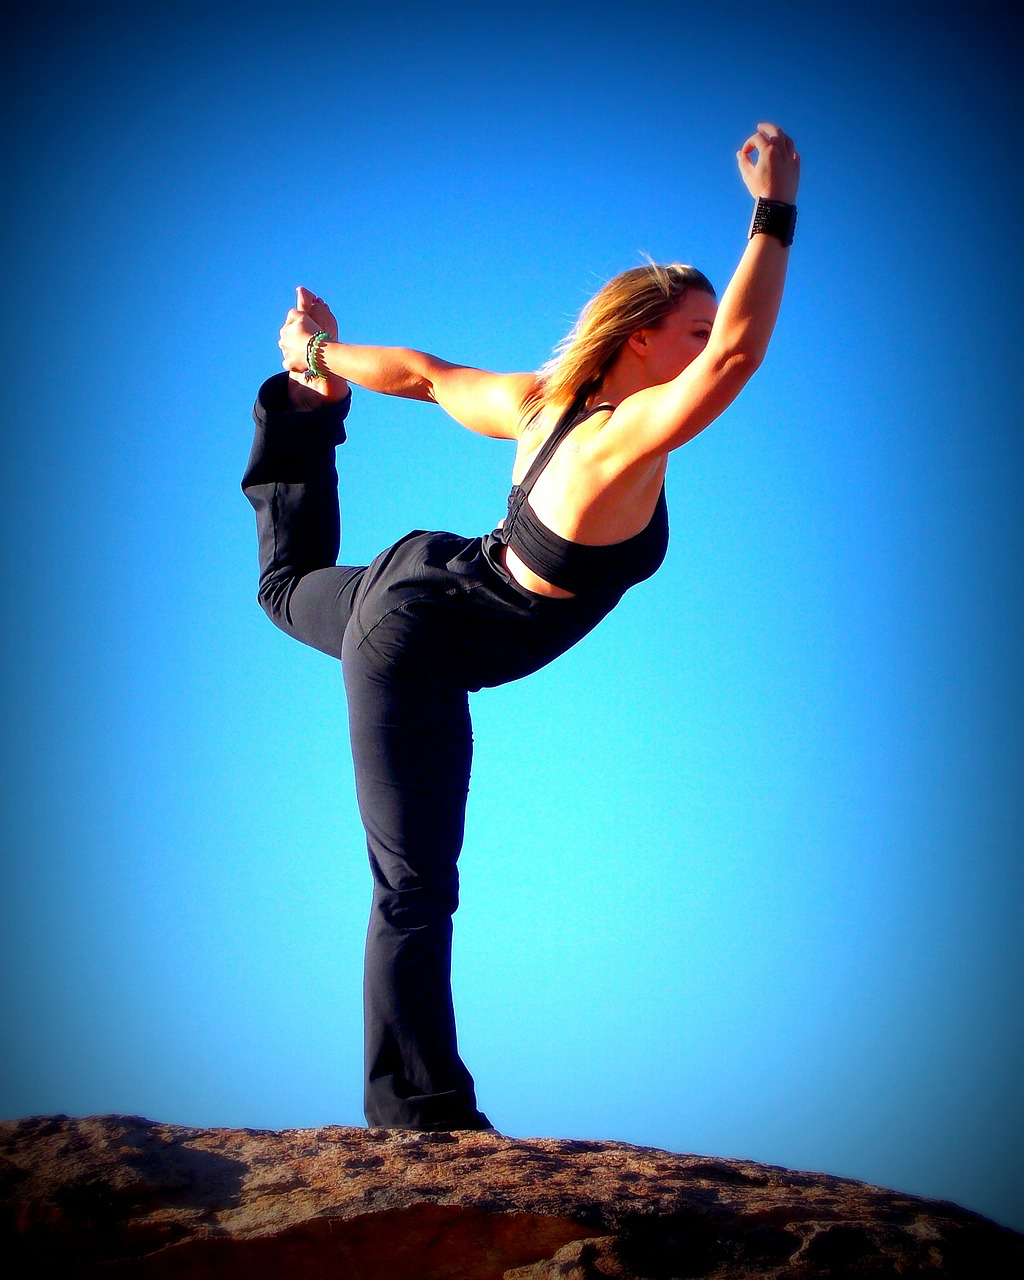 woman balance pose on rock